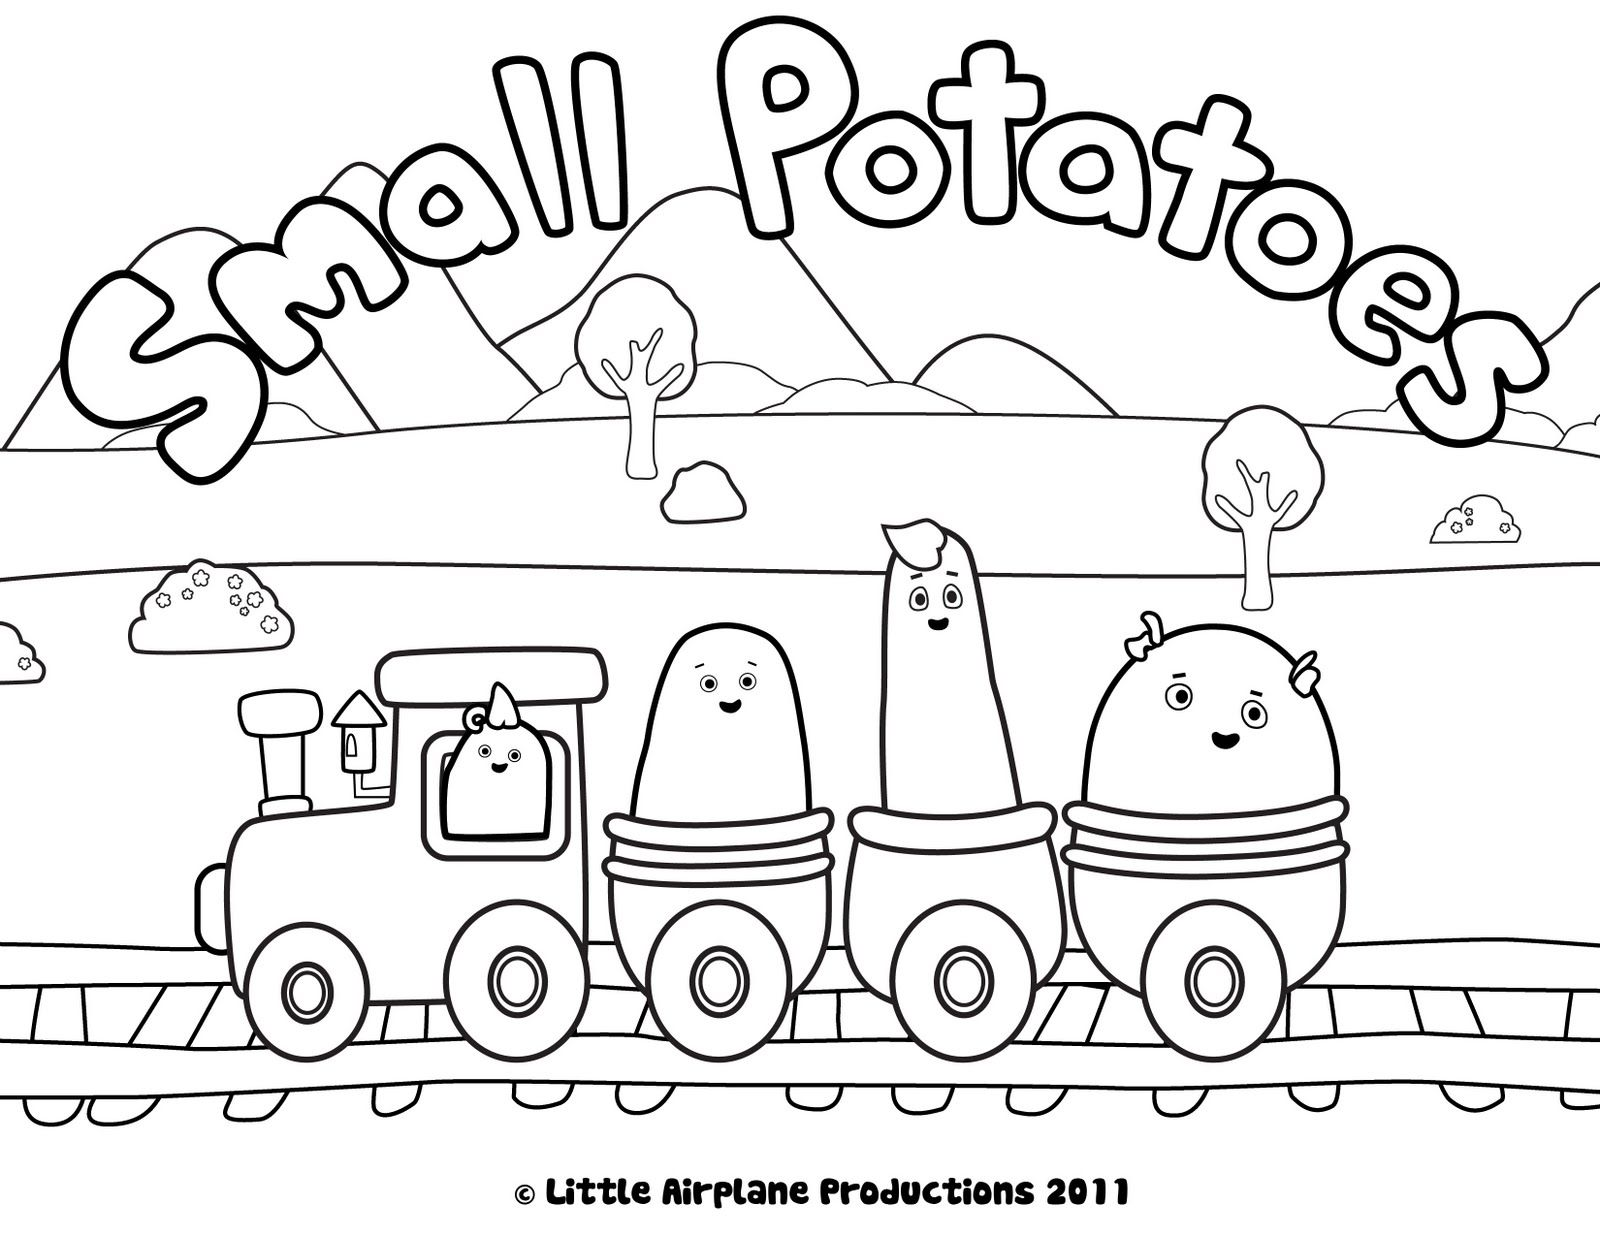 Erica Kepler Small Potatoes Coloring Pages Baseball Coloring Pages Coloring Pages Train Coloring Pages